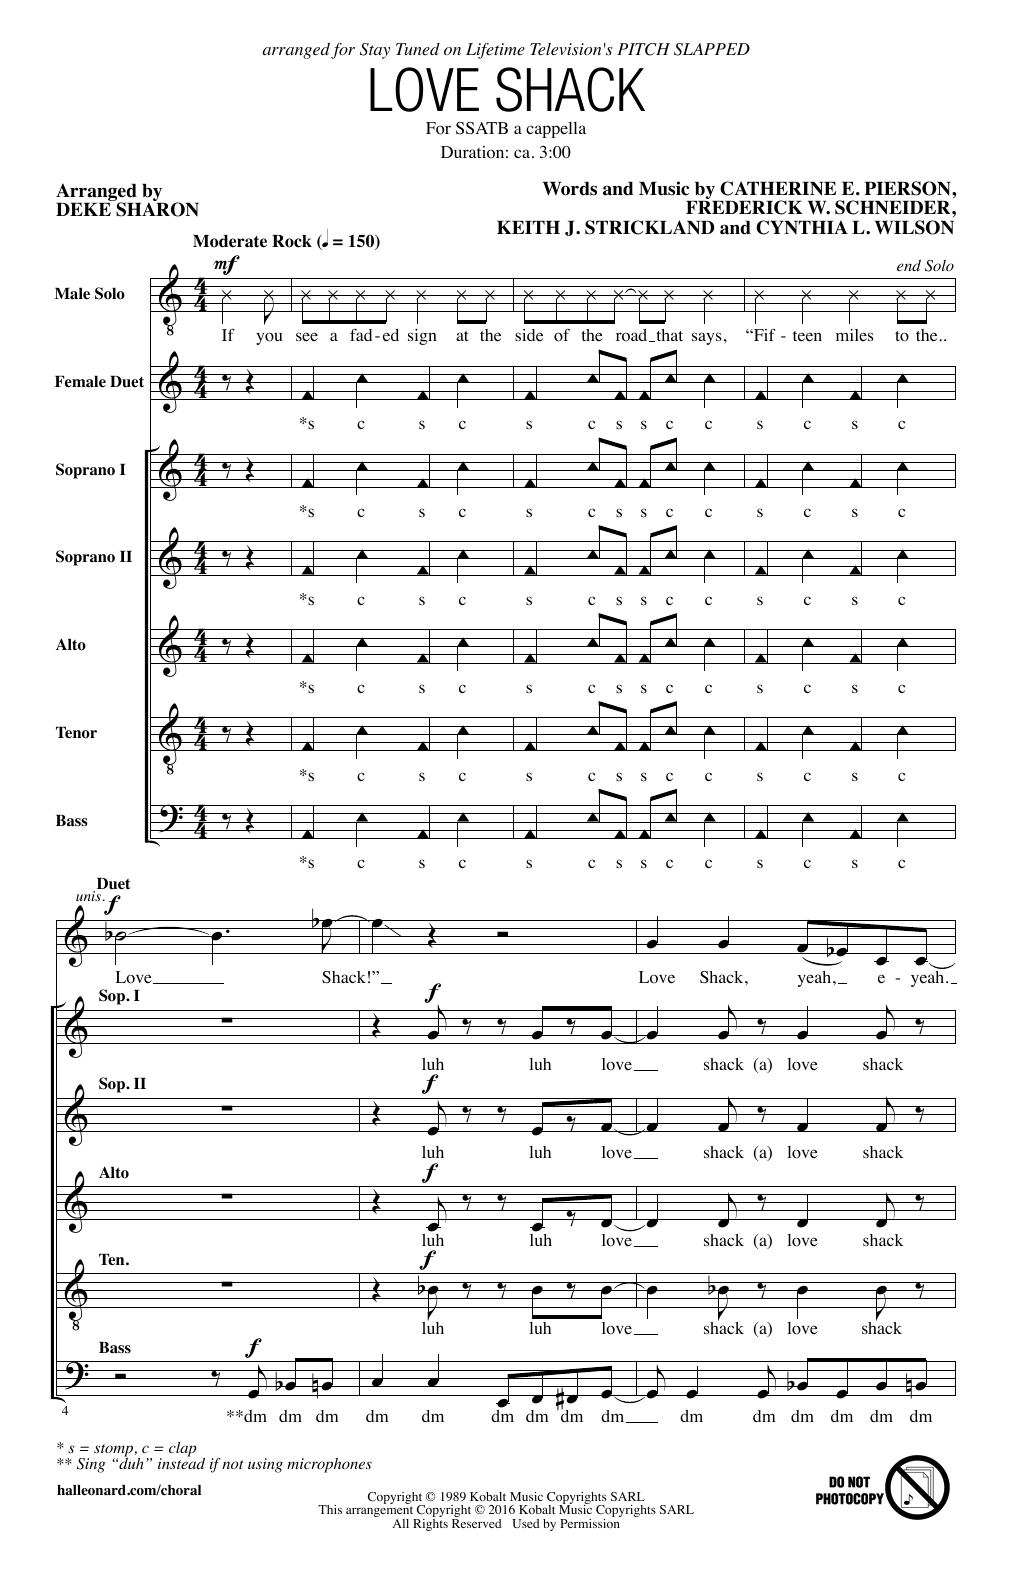 Love Shack (arr. Deke Sharon) Sheet Music